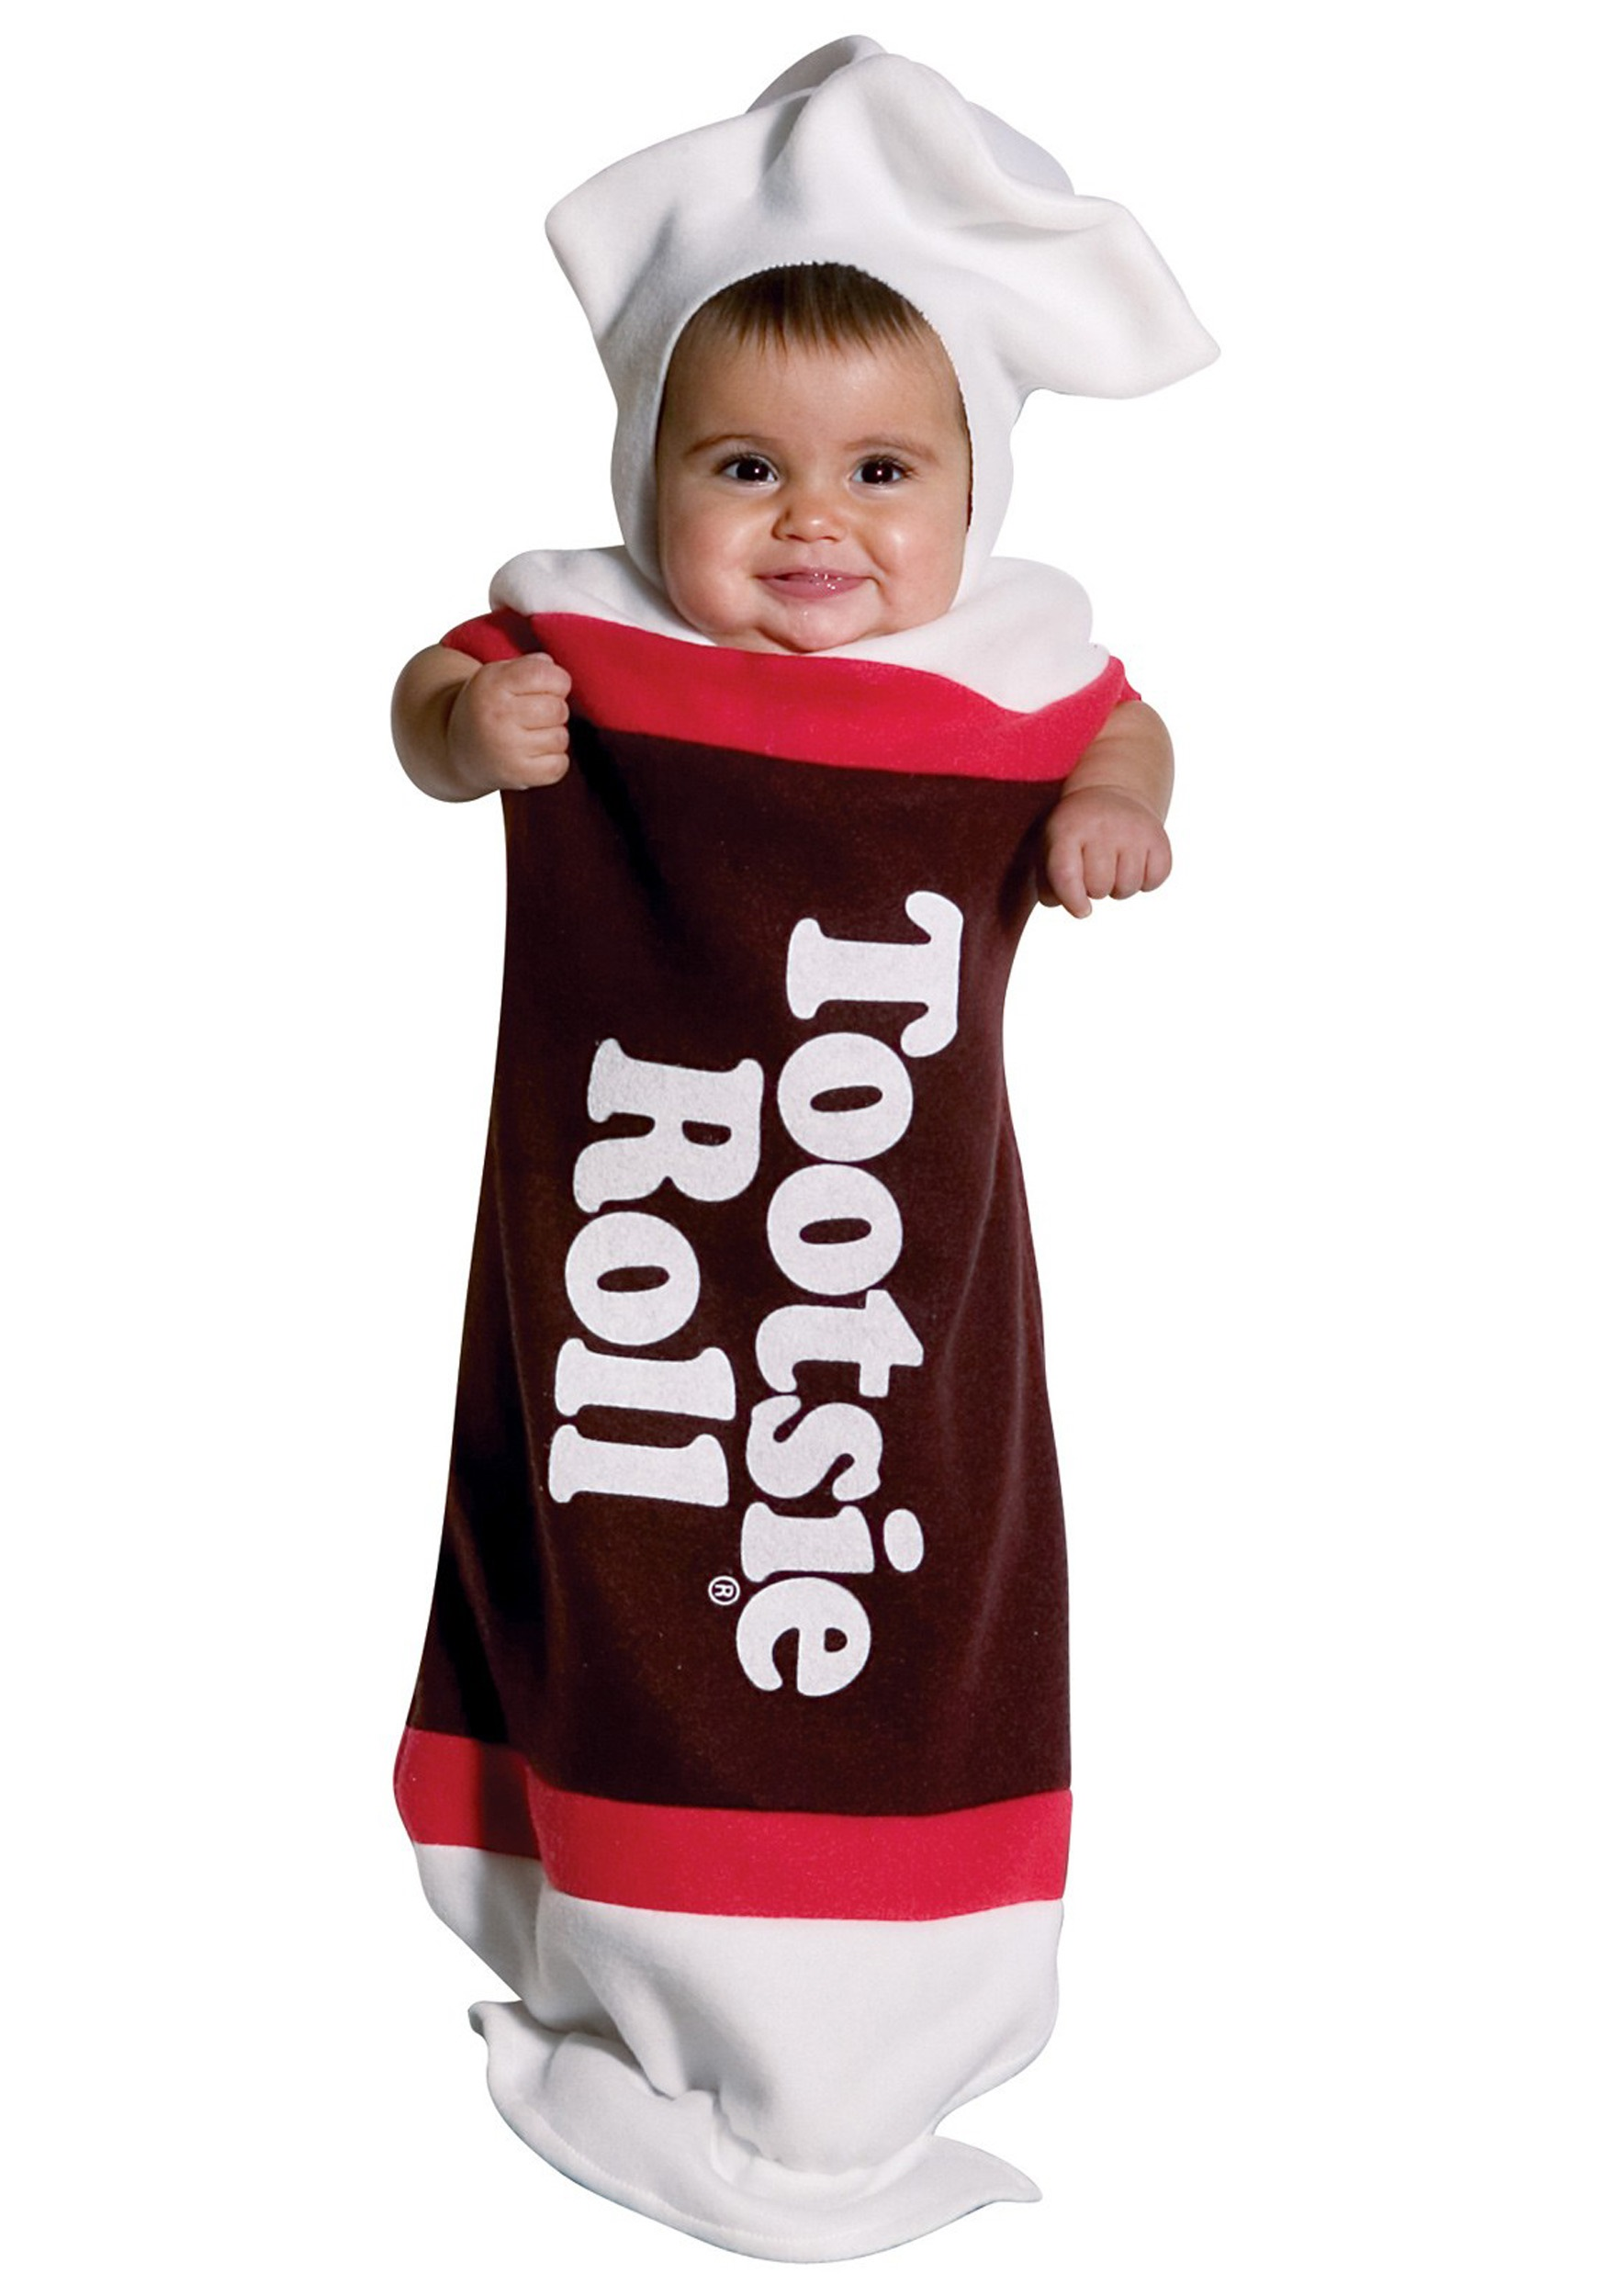 baby tootsie roll costume infant classic candy halloween costumes. Black Bedroom Furniture Sets. Home Design Ideas